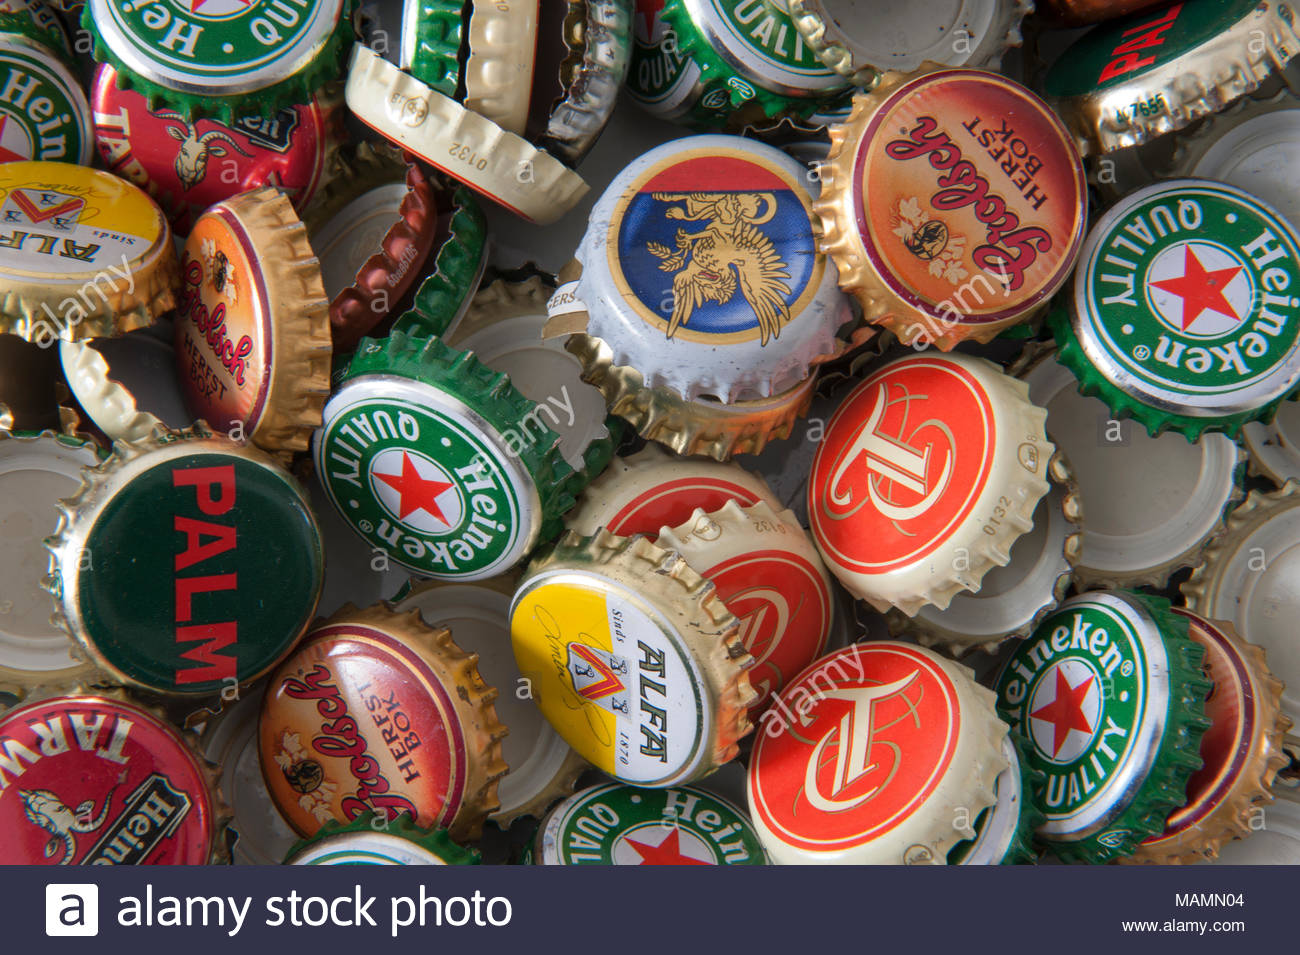 Generic 21-tooth crown cork bottle cap from various Dutch and Belgian beer brands. - Stock Image